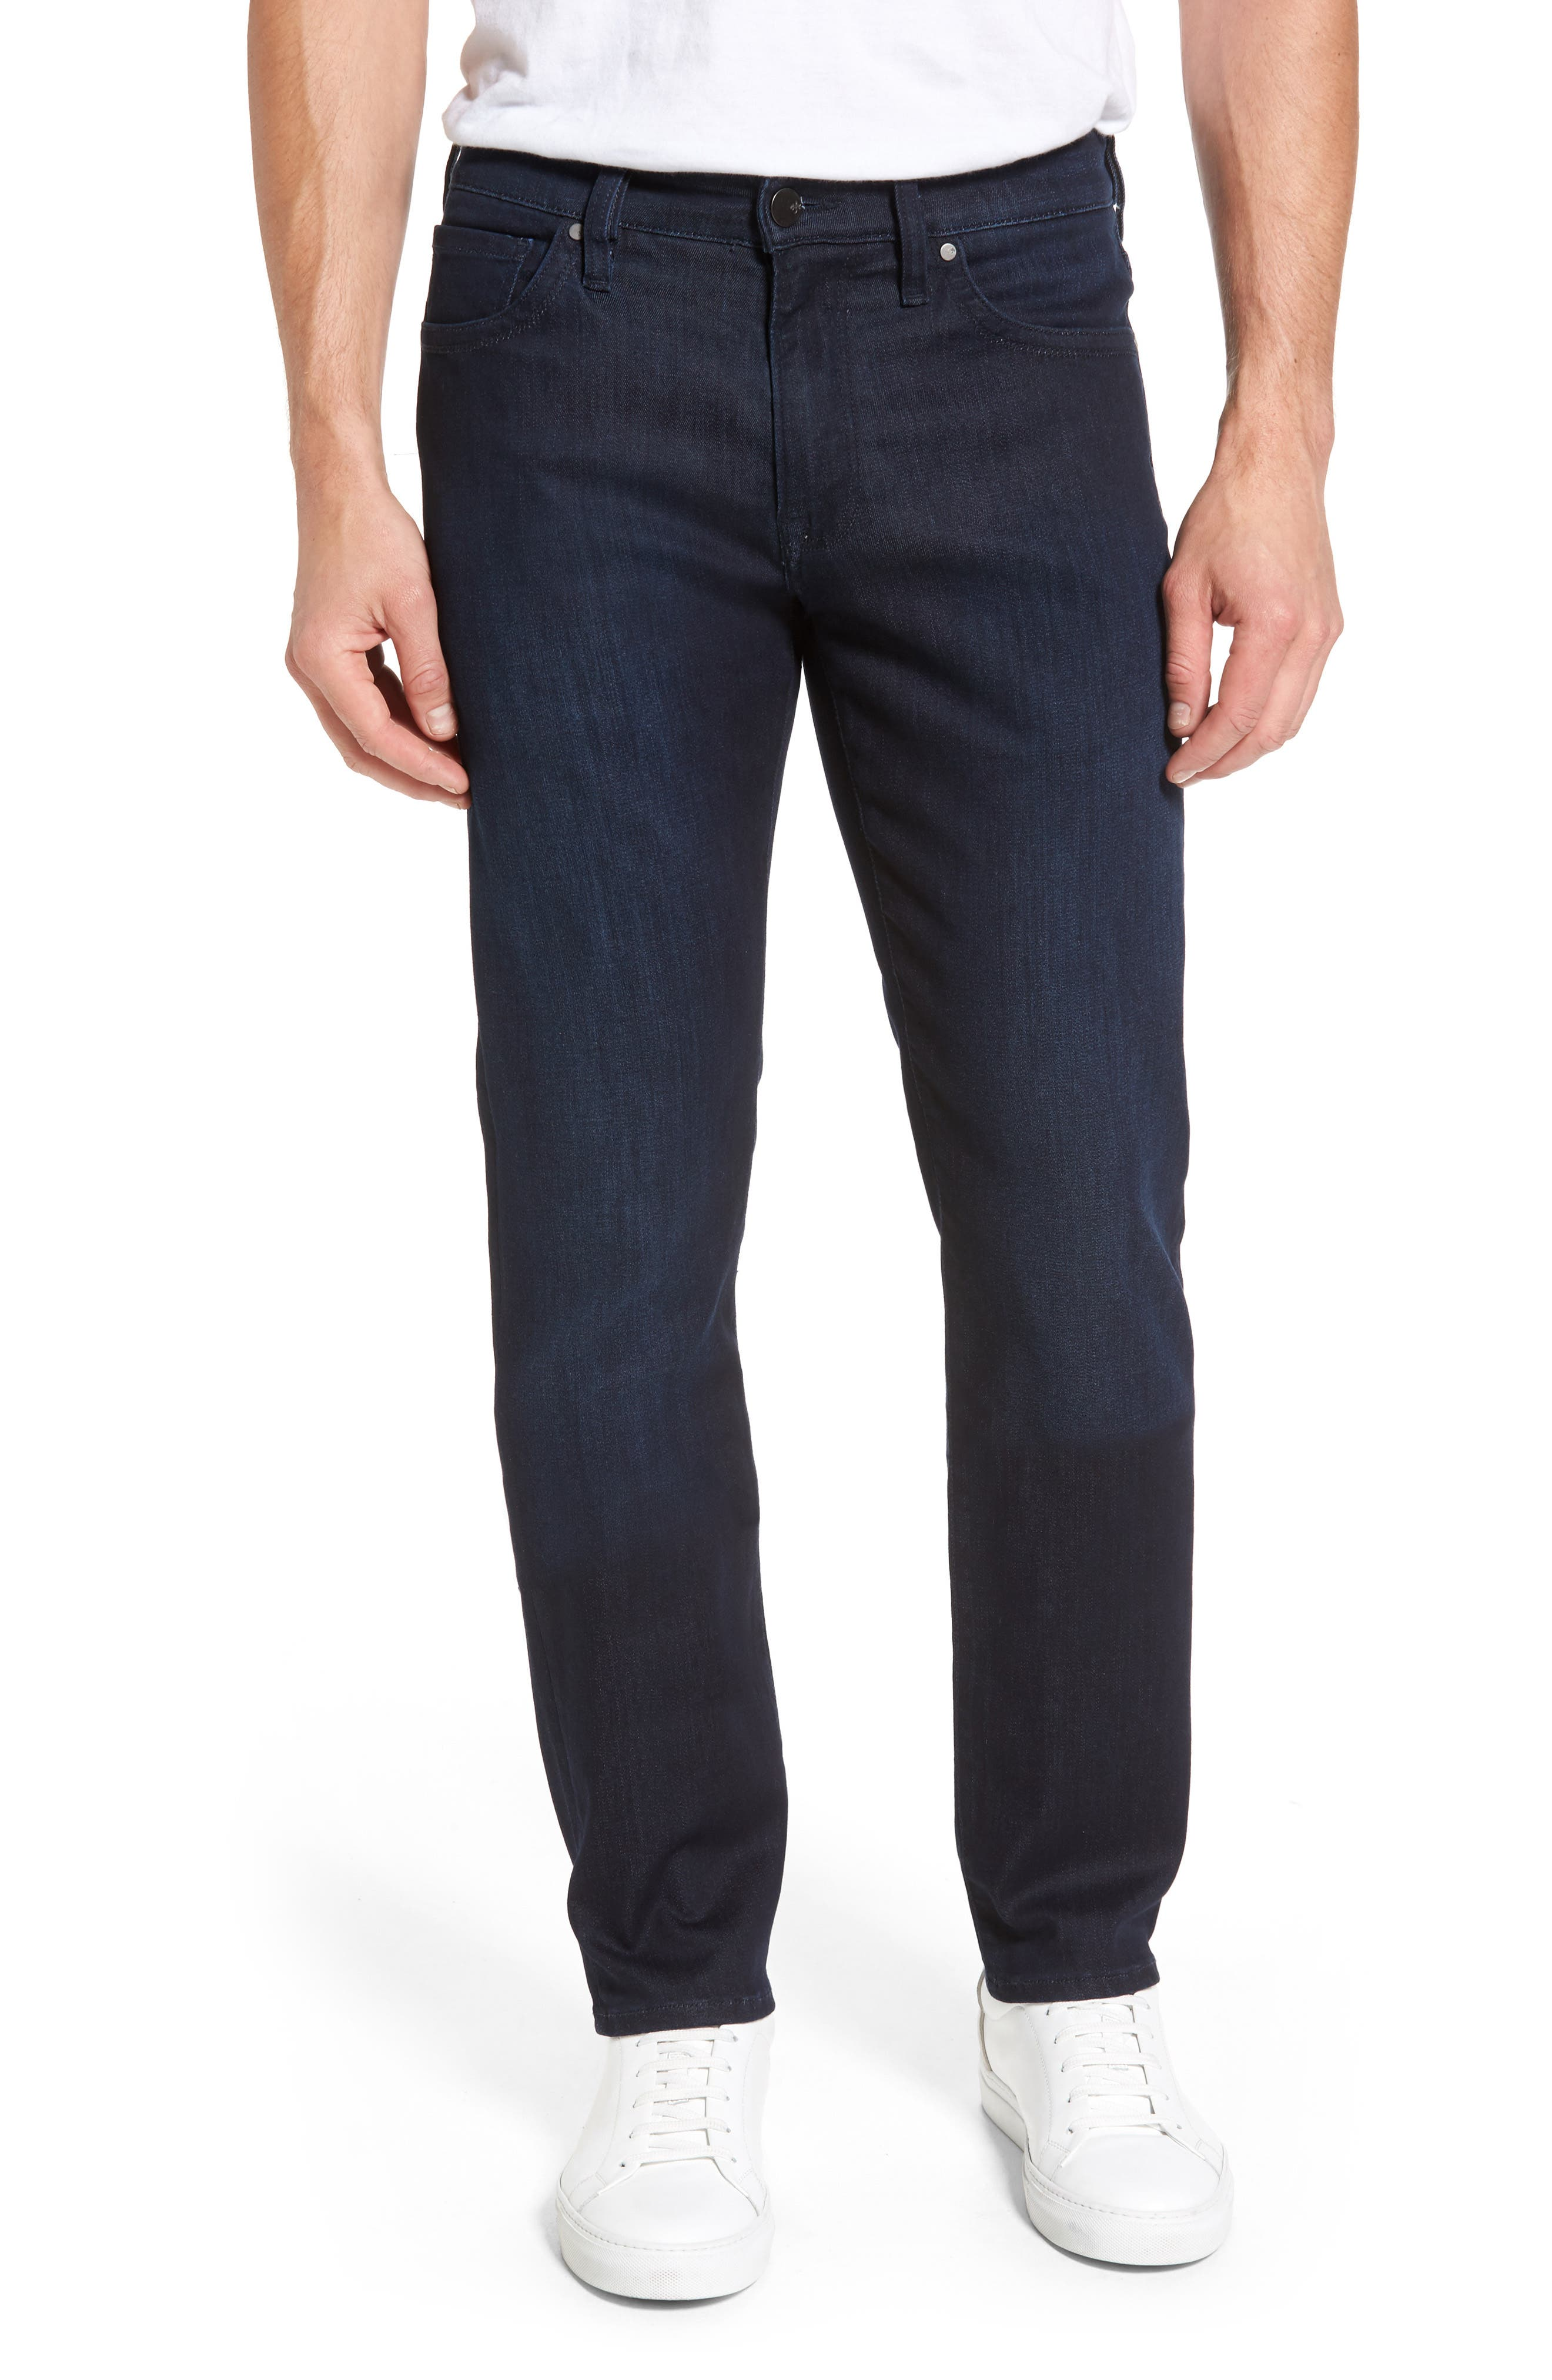 Courage Straight Leg Jeans,                         Main,                         color, Dark Rome